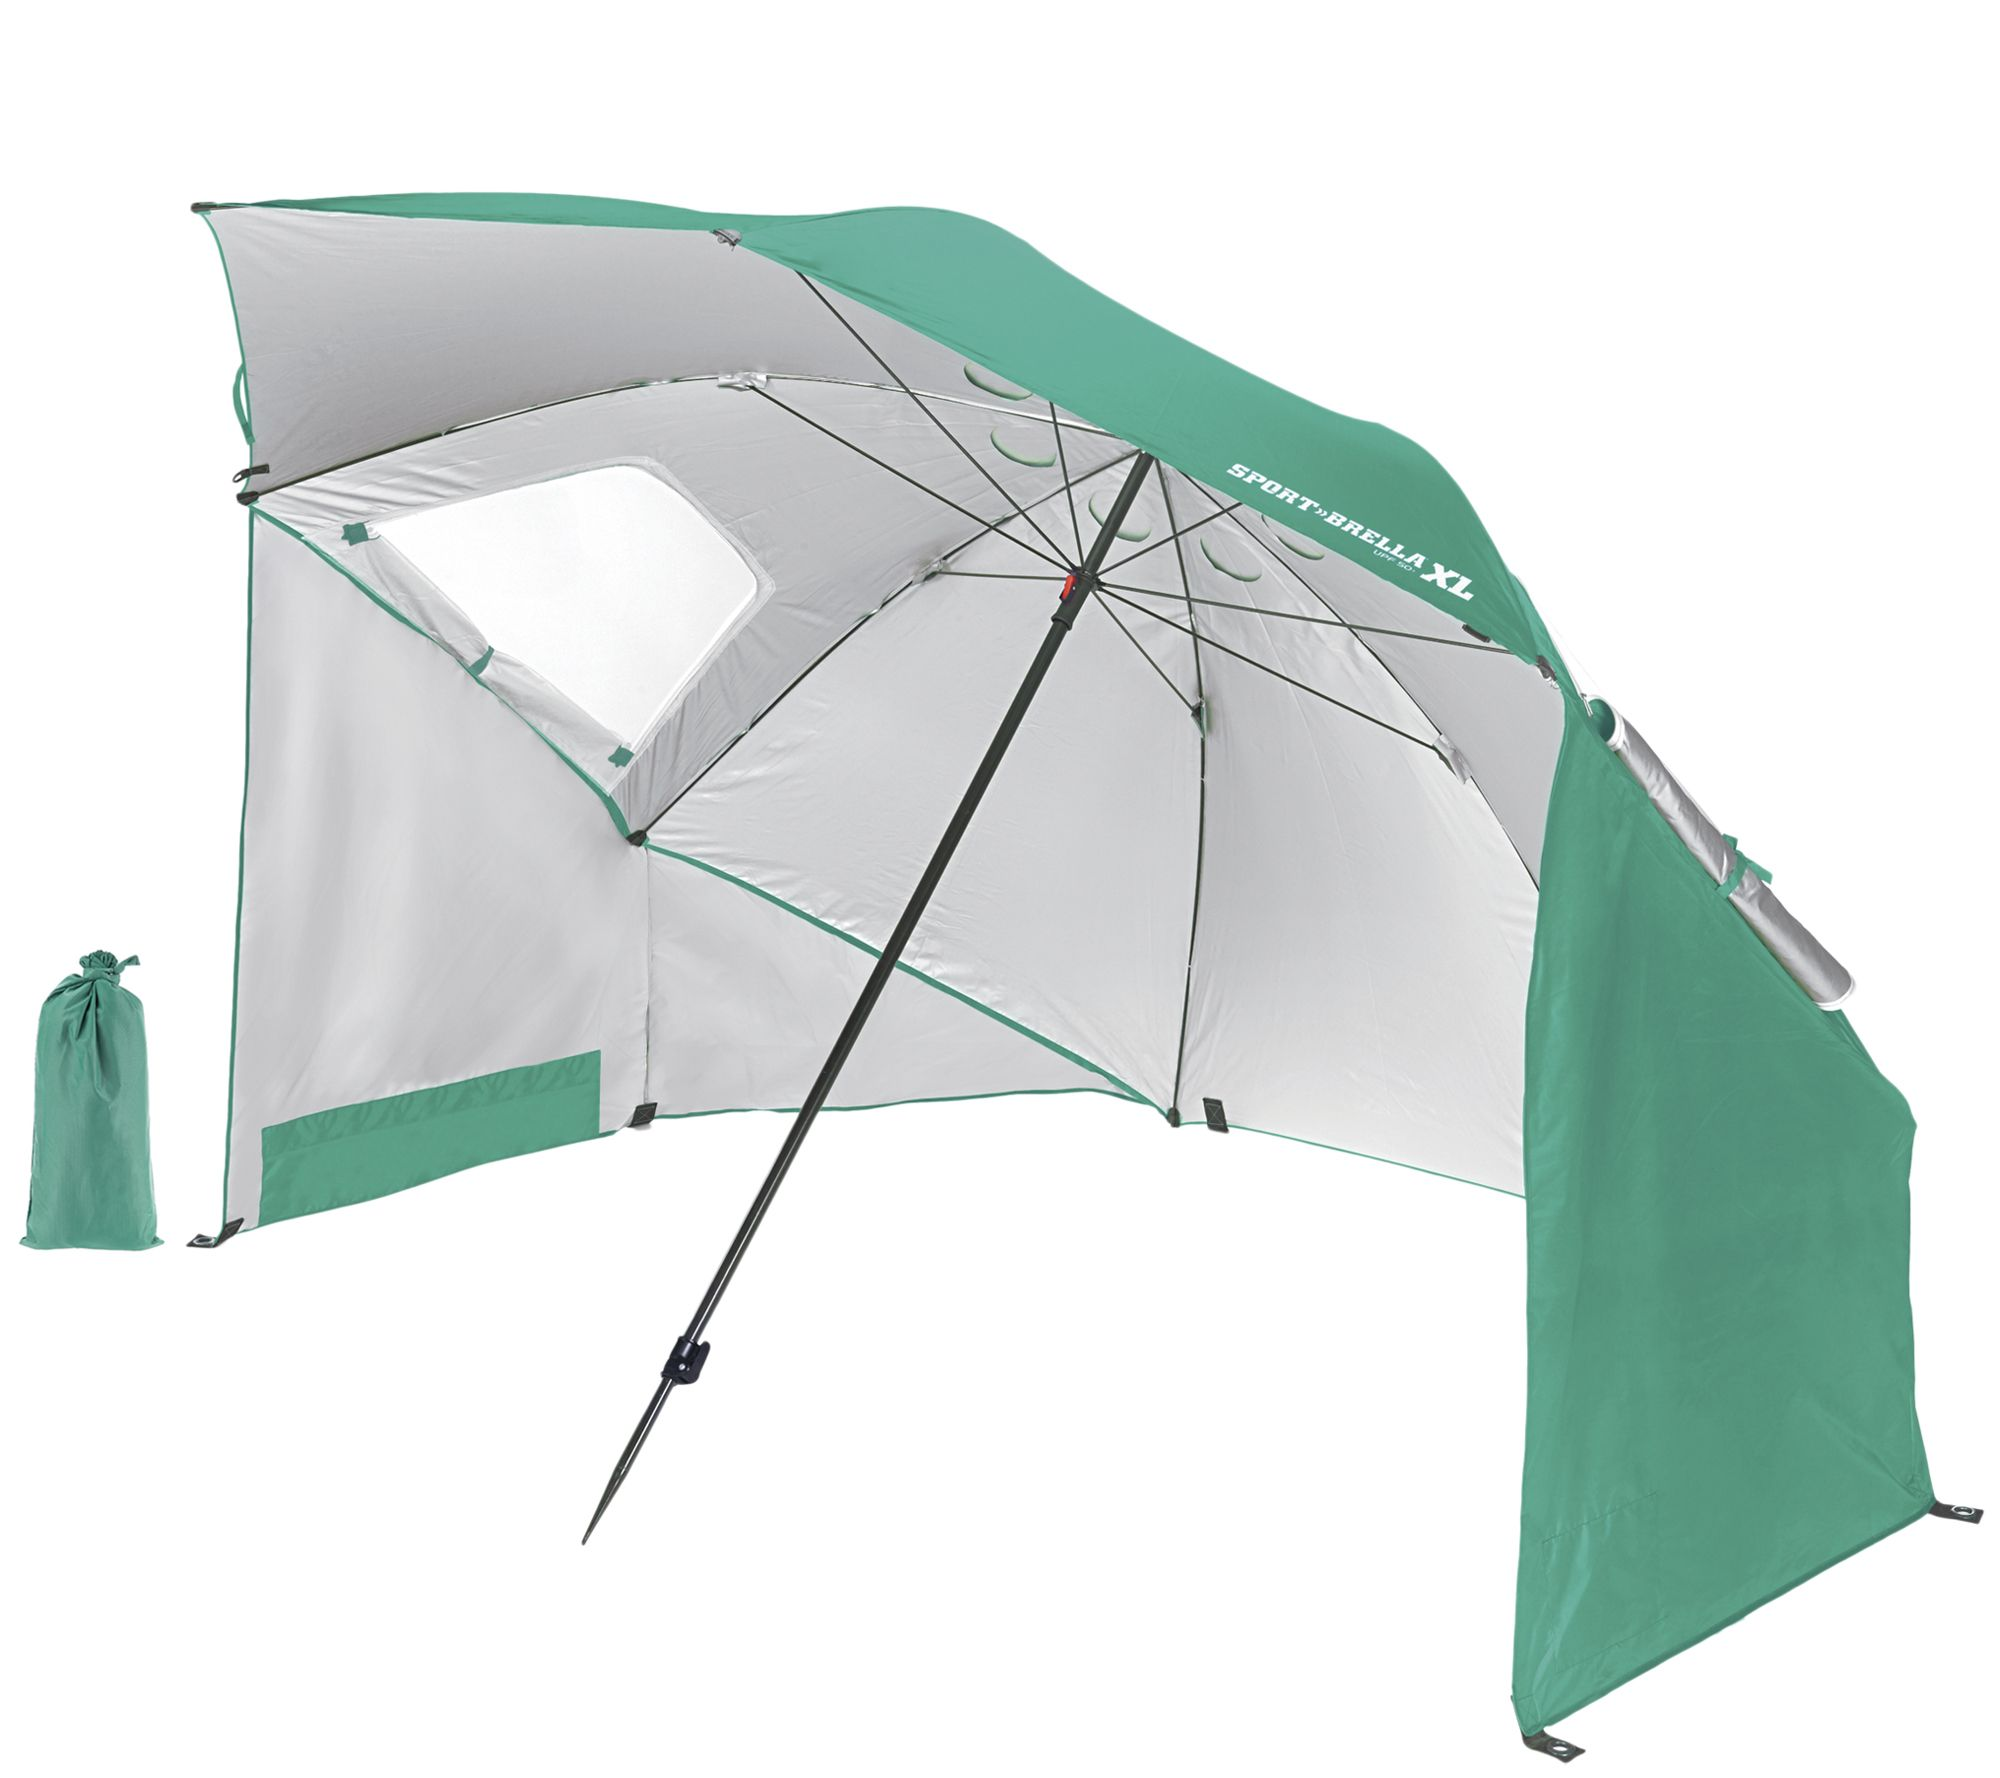 a18818e30198 Sport-Brella XL Instant Outdoor Family Shelter Umbrella - Page 1 — QVC.com